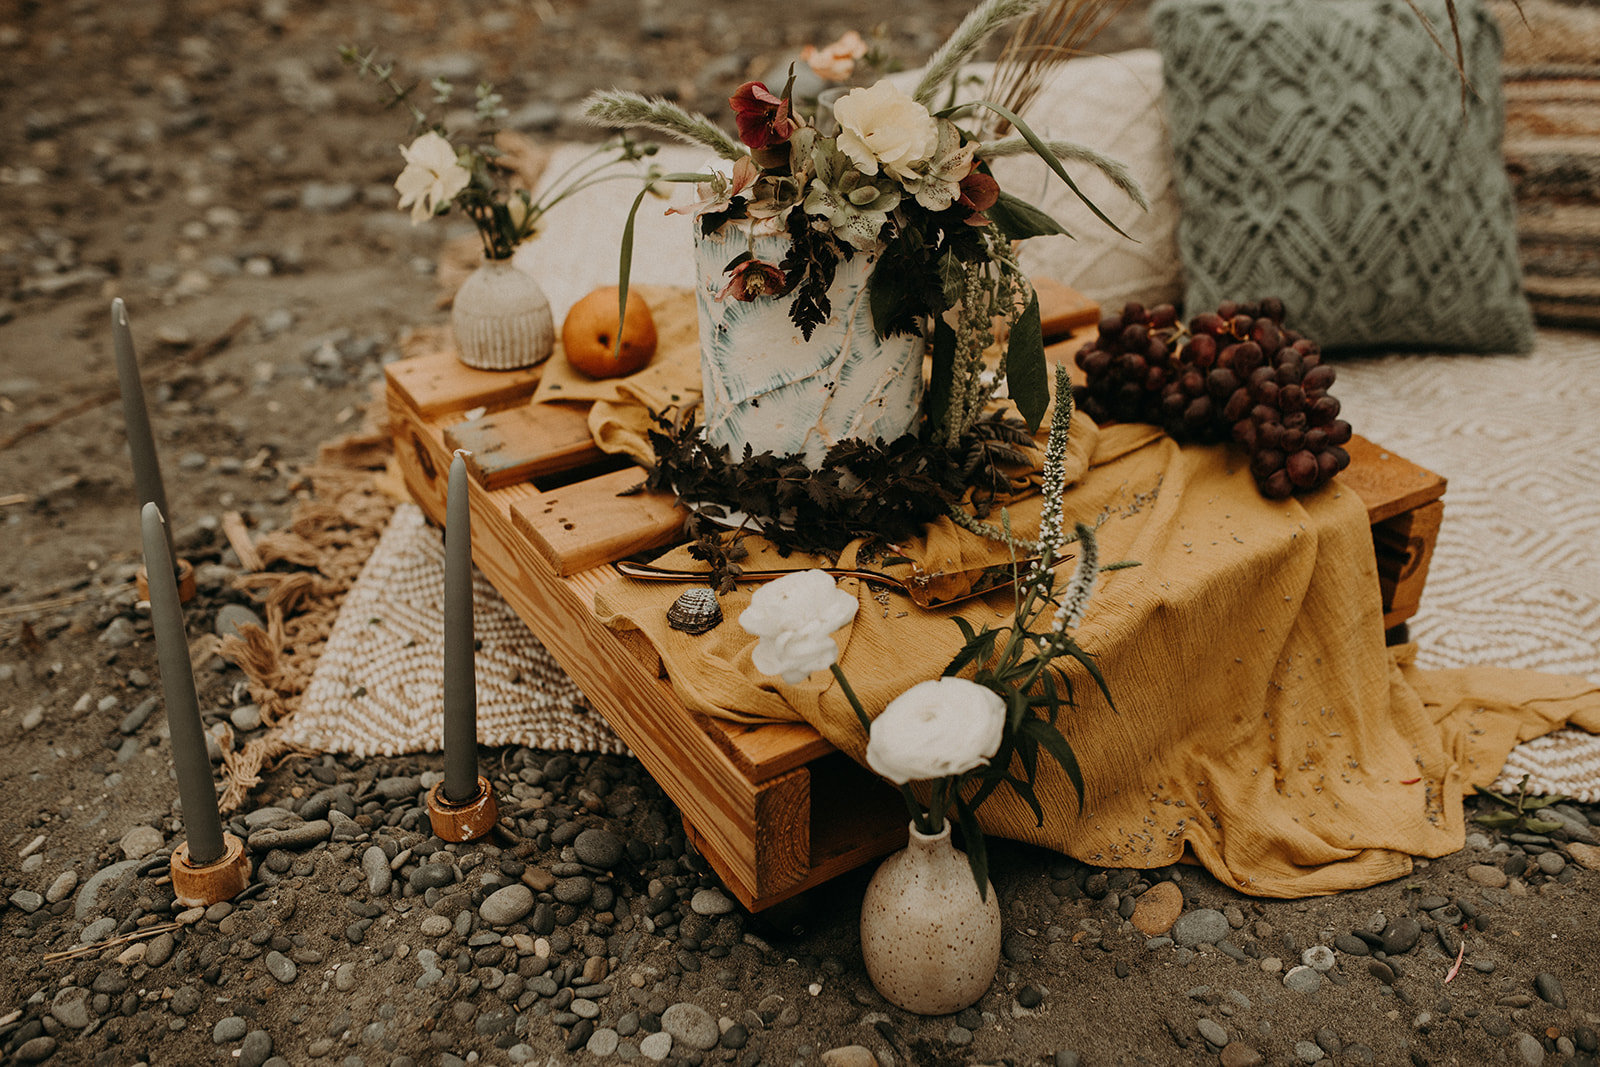 Ruby_Beach_Styled_Elopement_-_Run_Away_with_Me_Elopement_Collective_-_Kamra_Fuller_Photography_-_Details-19